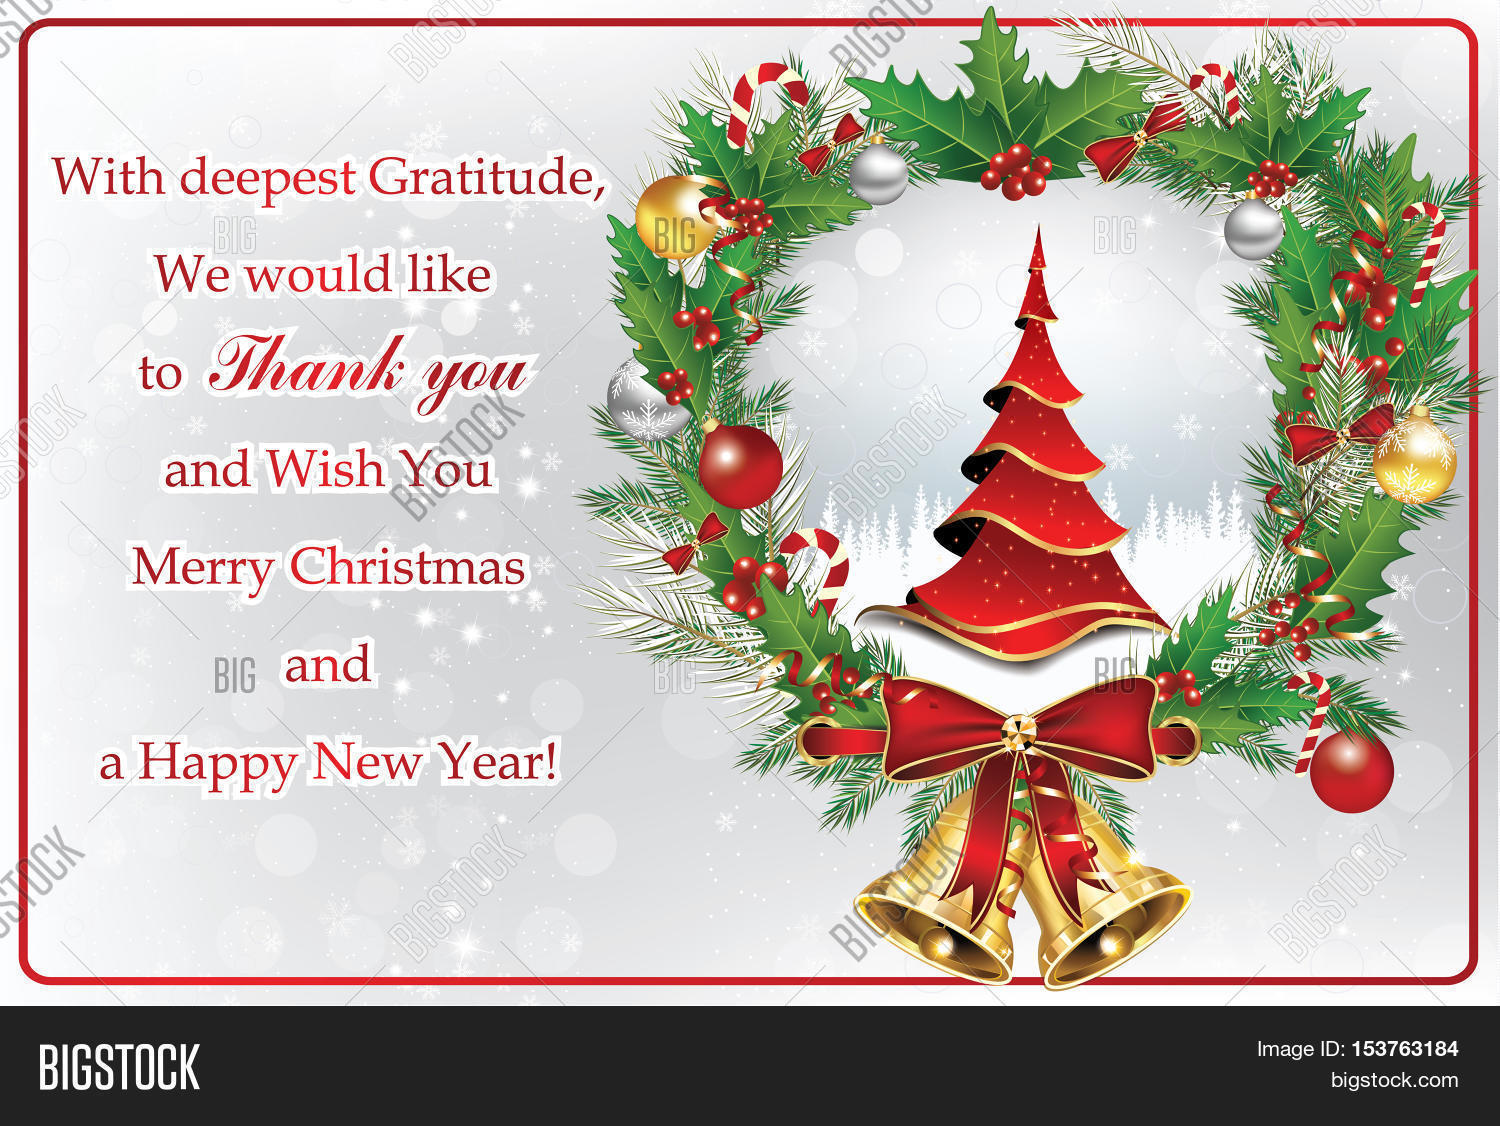 Thank you business greeting card image photo bigstock thank you business greeting card for christmas and new year contains a thank you message kristyandbryce Image collections